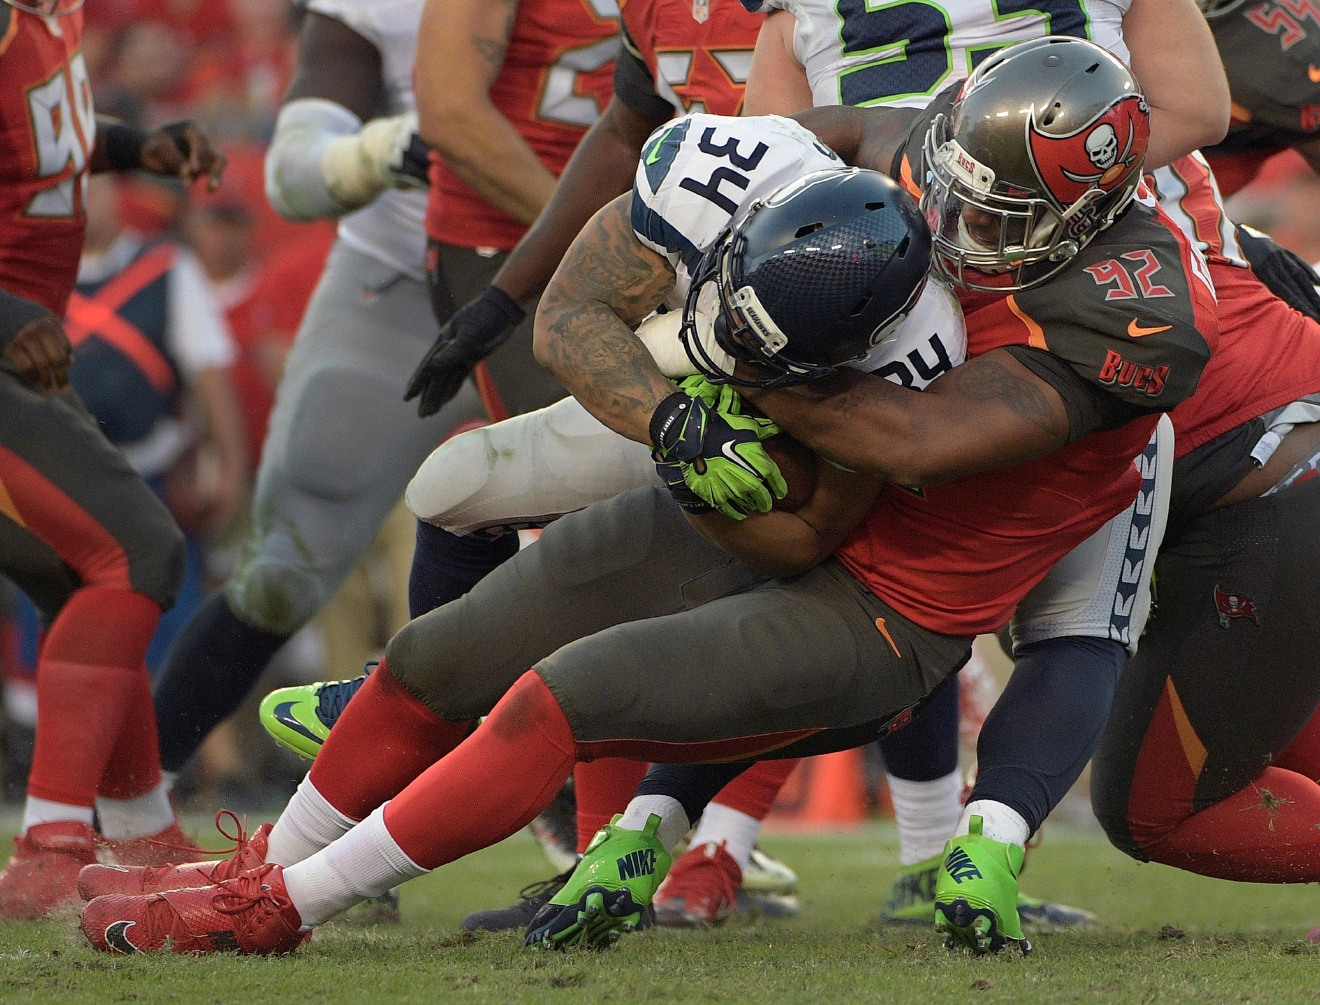 Tampa Bay Buccaneers defensive end William Gholston (92) stops Seattle Seahawks running back Thomas Rawls (34) on a run during the second quarter of an NFL football game Sunday, Nov. 27, 2016, in Tampa, Fla. (AP Photo/Phelan Ebenhack)